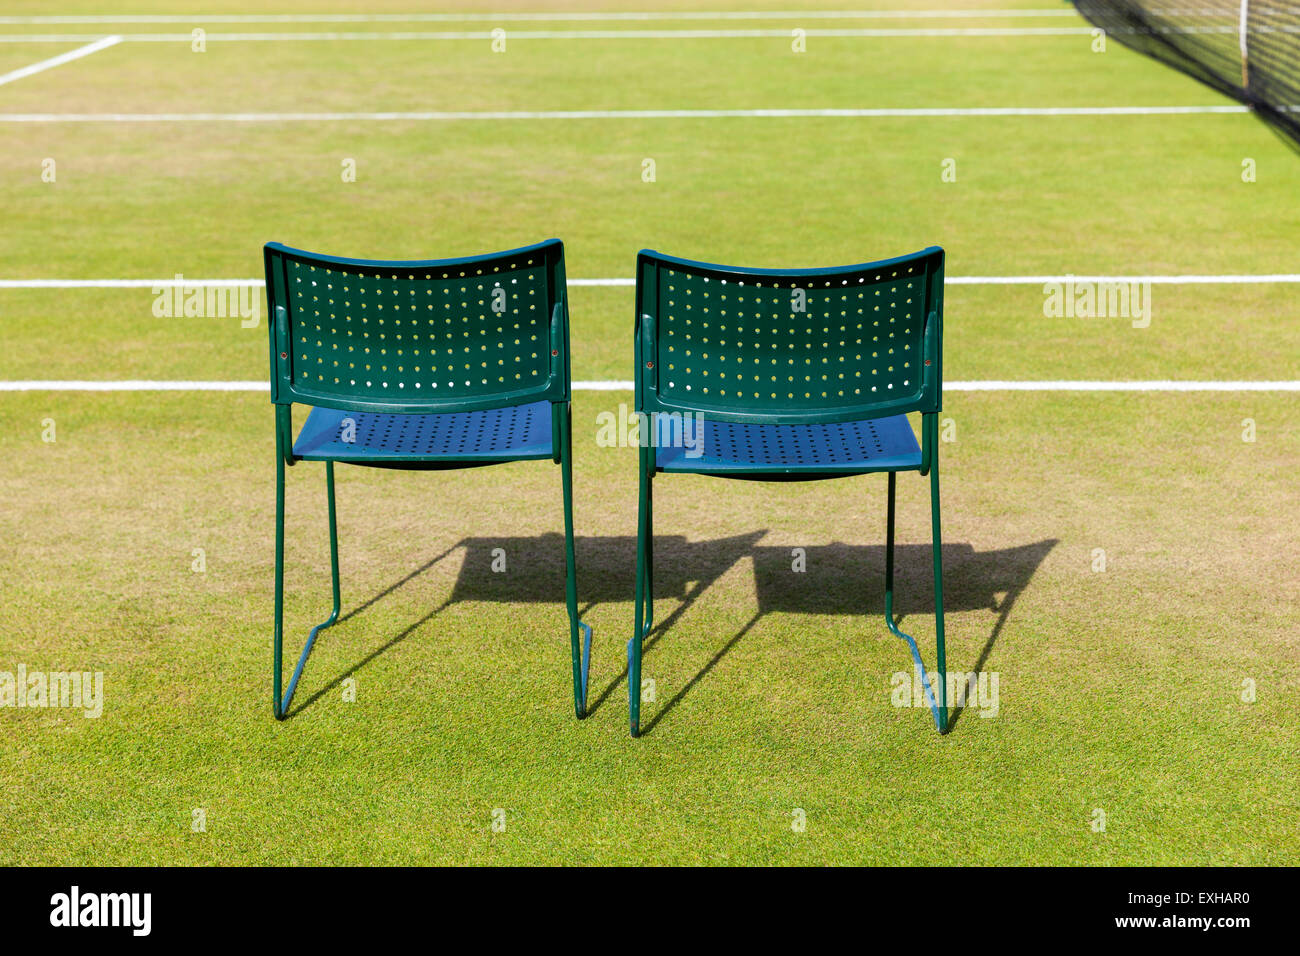 Attirant Two Empty Playeru0027s Chairs On A Grass Court At The All England Lawn Tennis  Club During